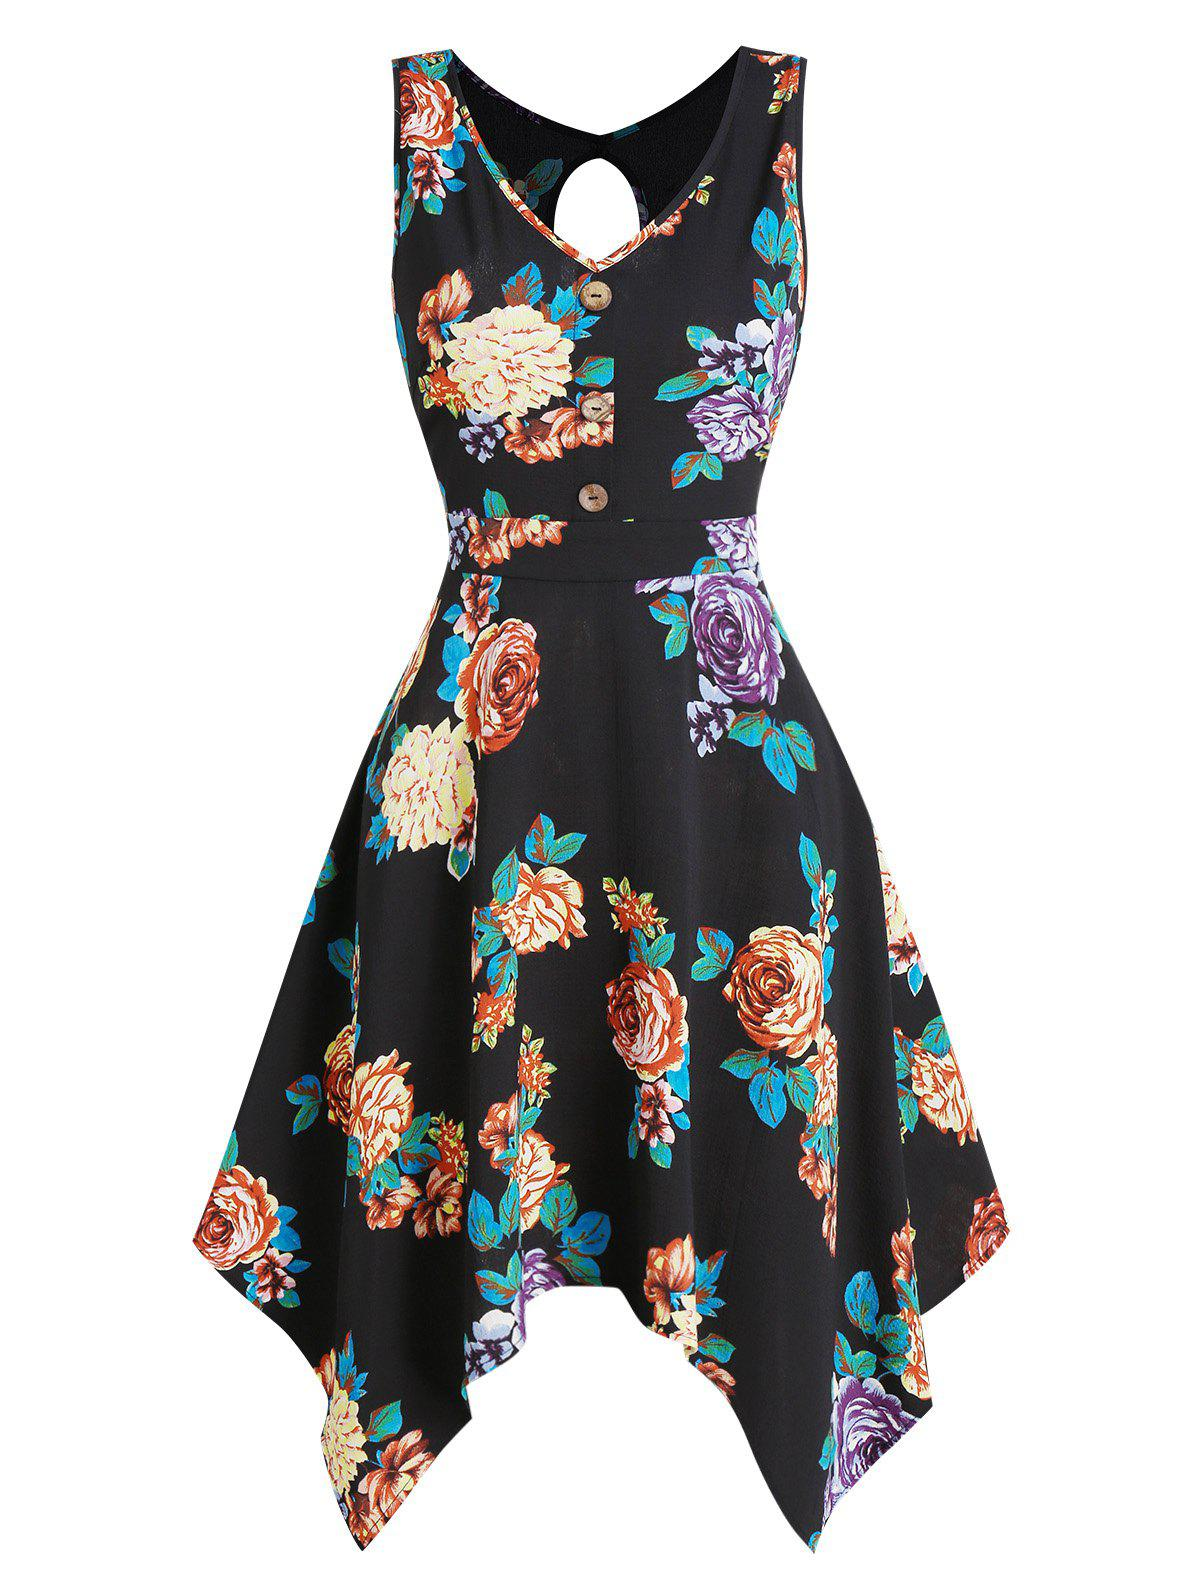 Floral Print Sleeveless Cut Out Handkerchief Dress - BLACK 3XL